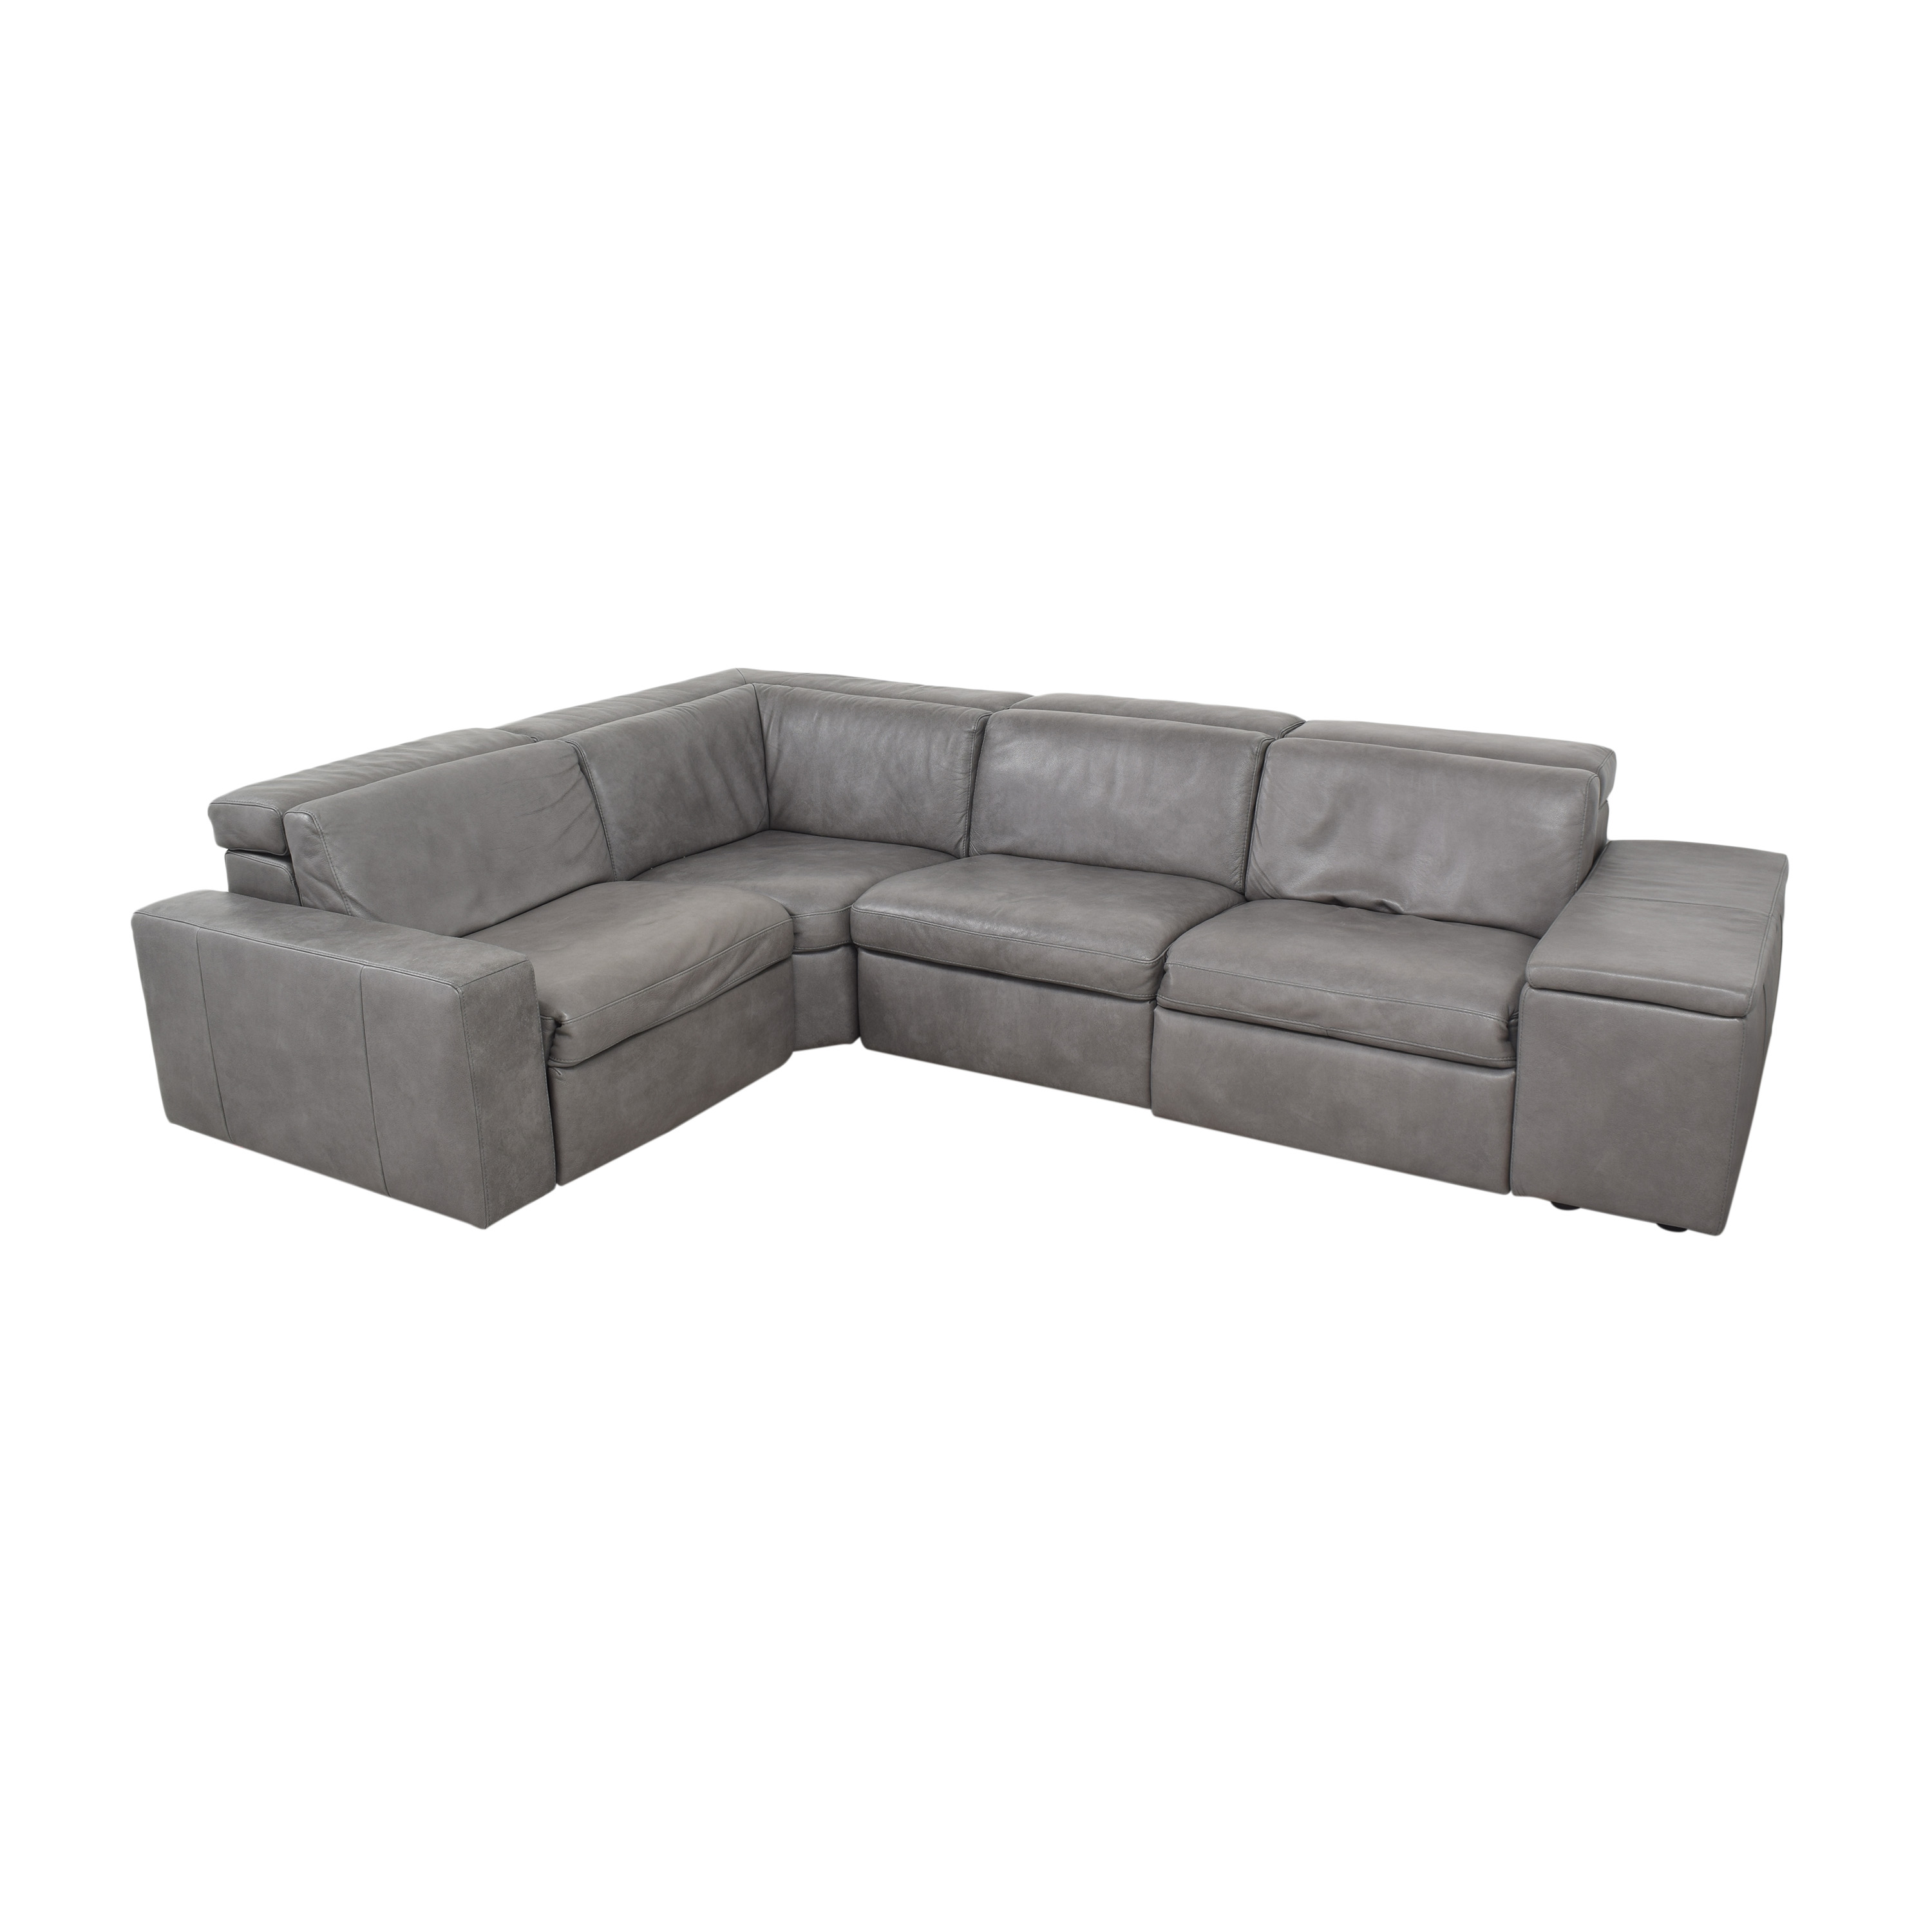 West Elm West Elm Enzo Four Piece Reclining Sectional Sofa Sectionals